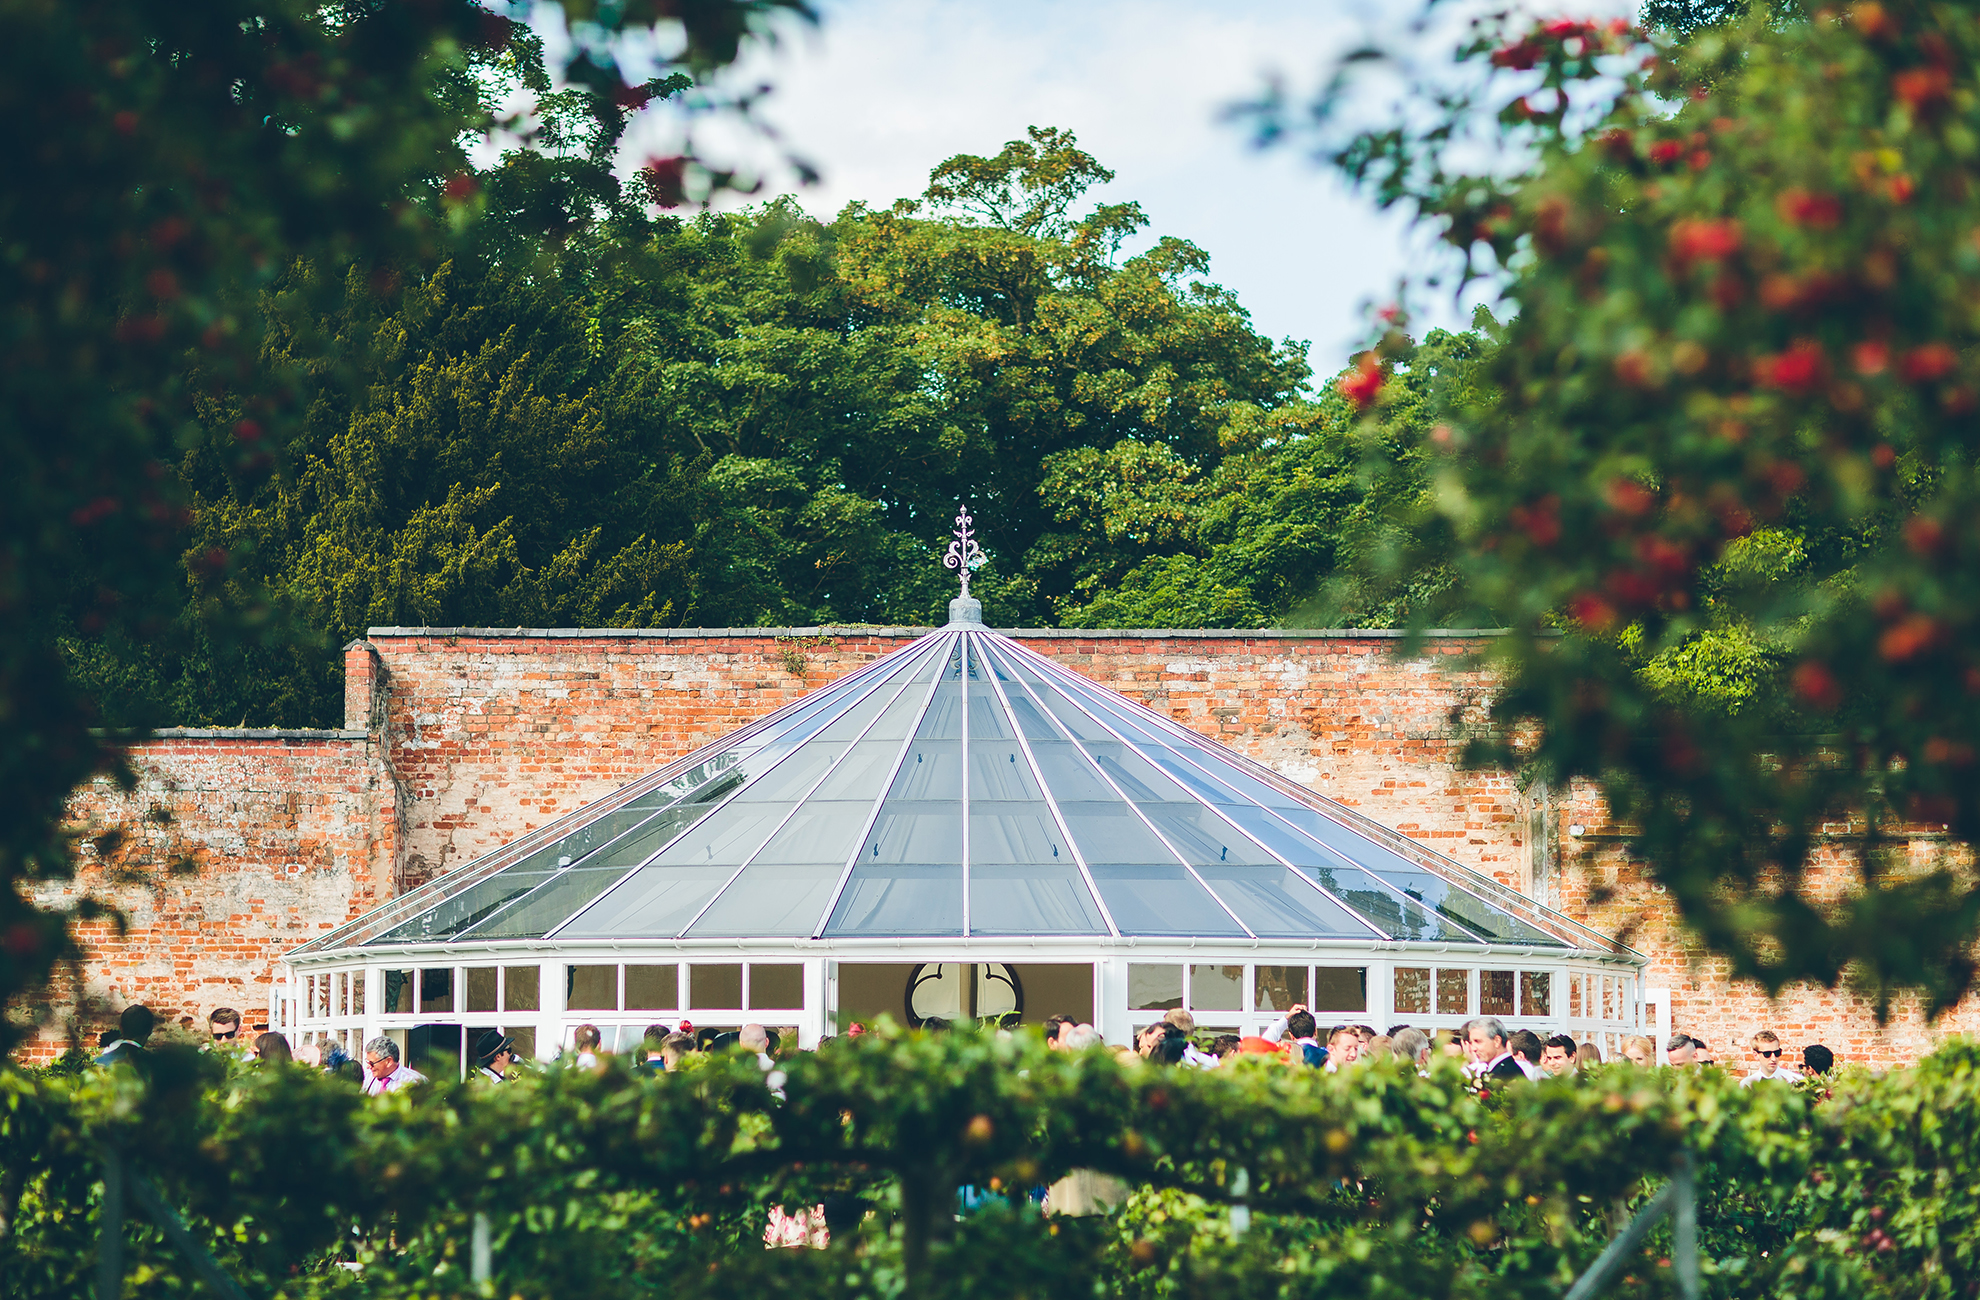 The Glasshouse at Combermere Abbey looks stunning in the spring sunshine